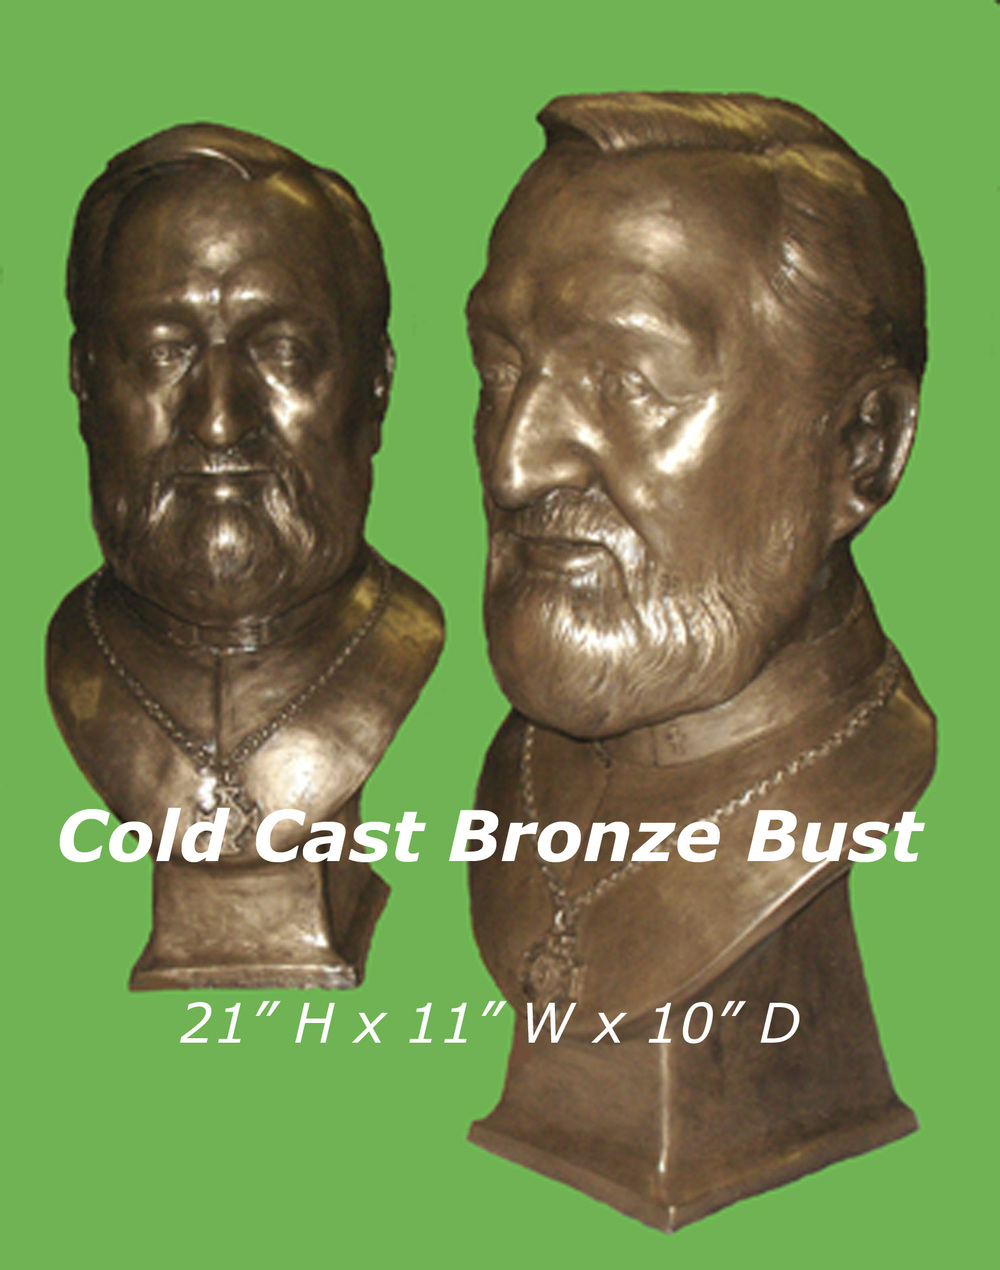 CompCon - PIC 56 Cold Cast Bronze Bust w Text.jpg